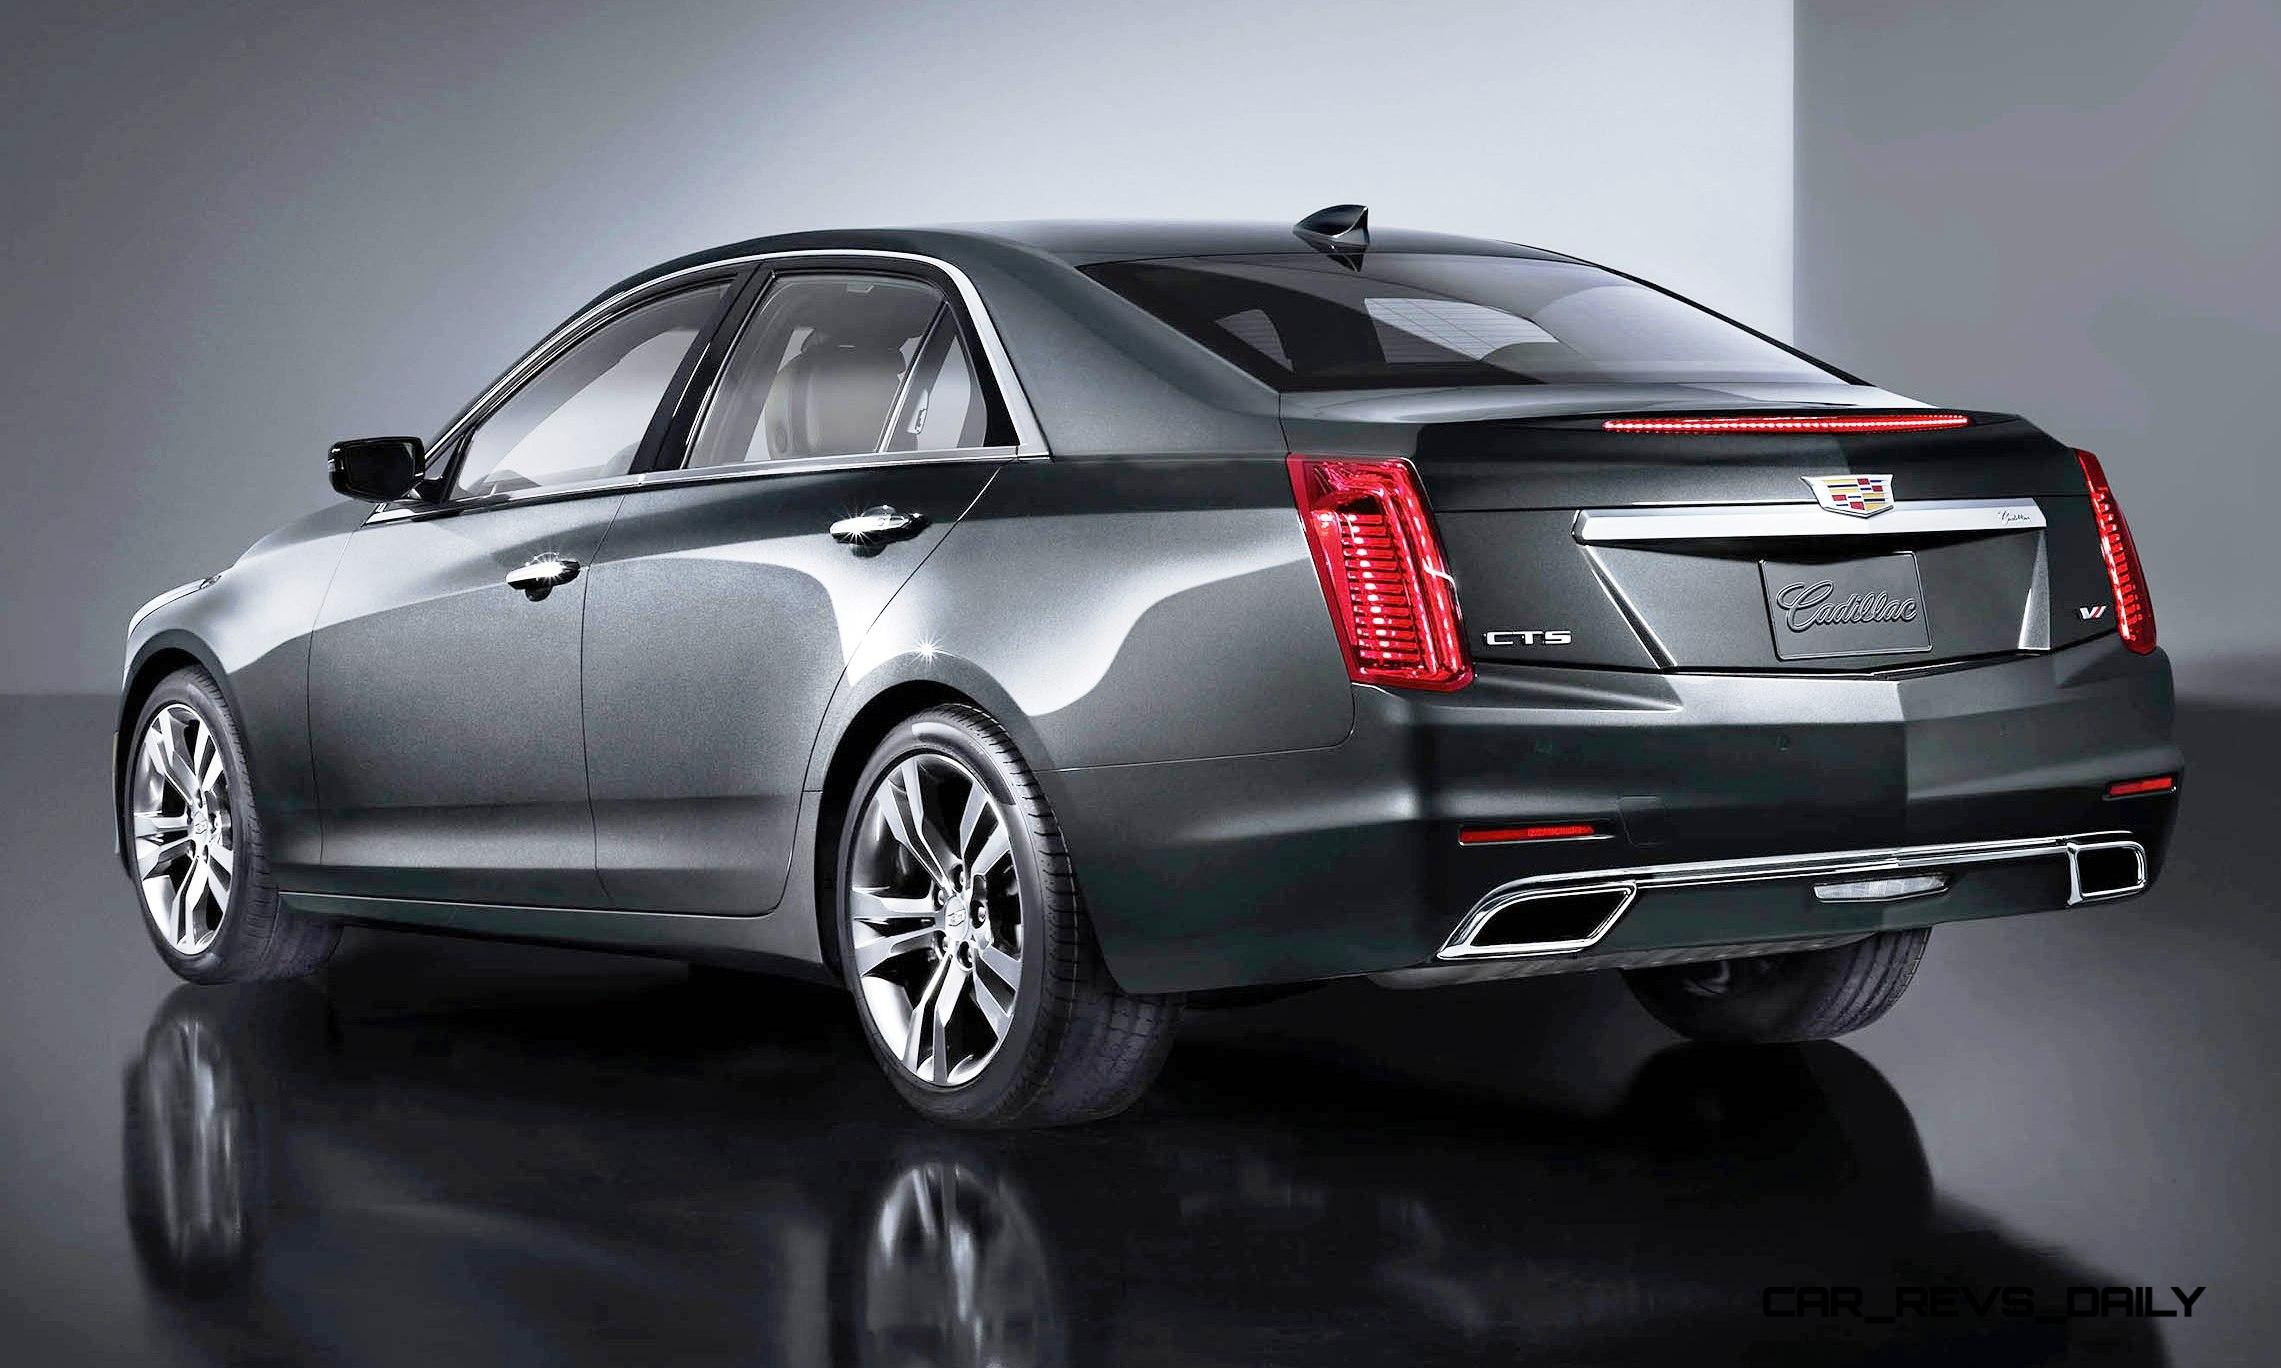 2015 cadillac cts updated with new badges led brake lights exhaust details and cabin tech. Black Bedroom Furniture Sets. Home Design Ideas